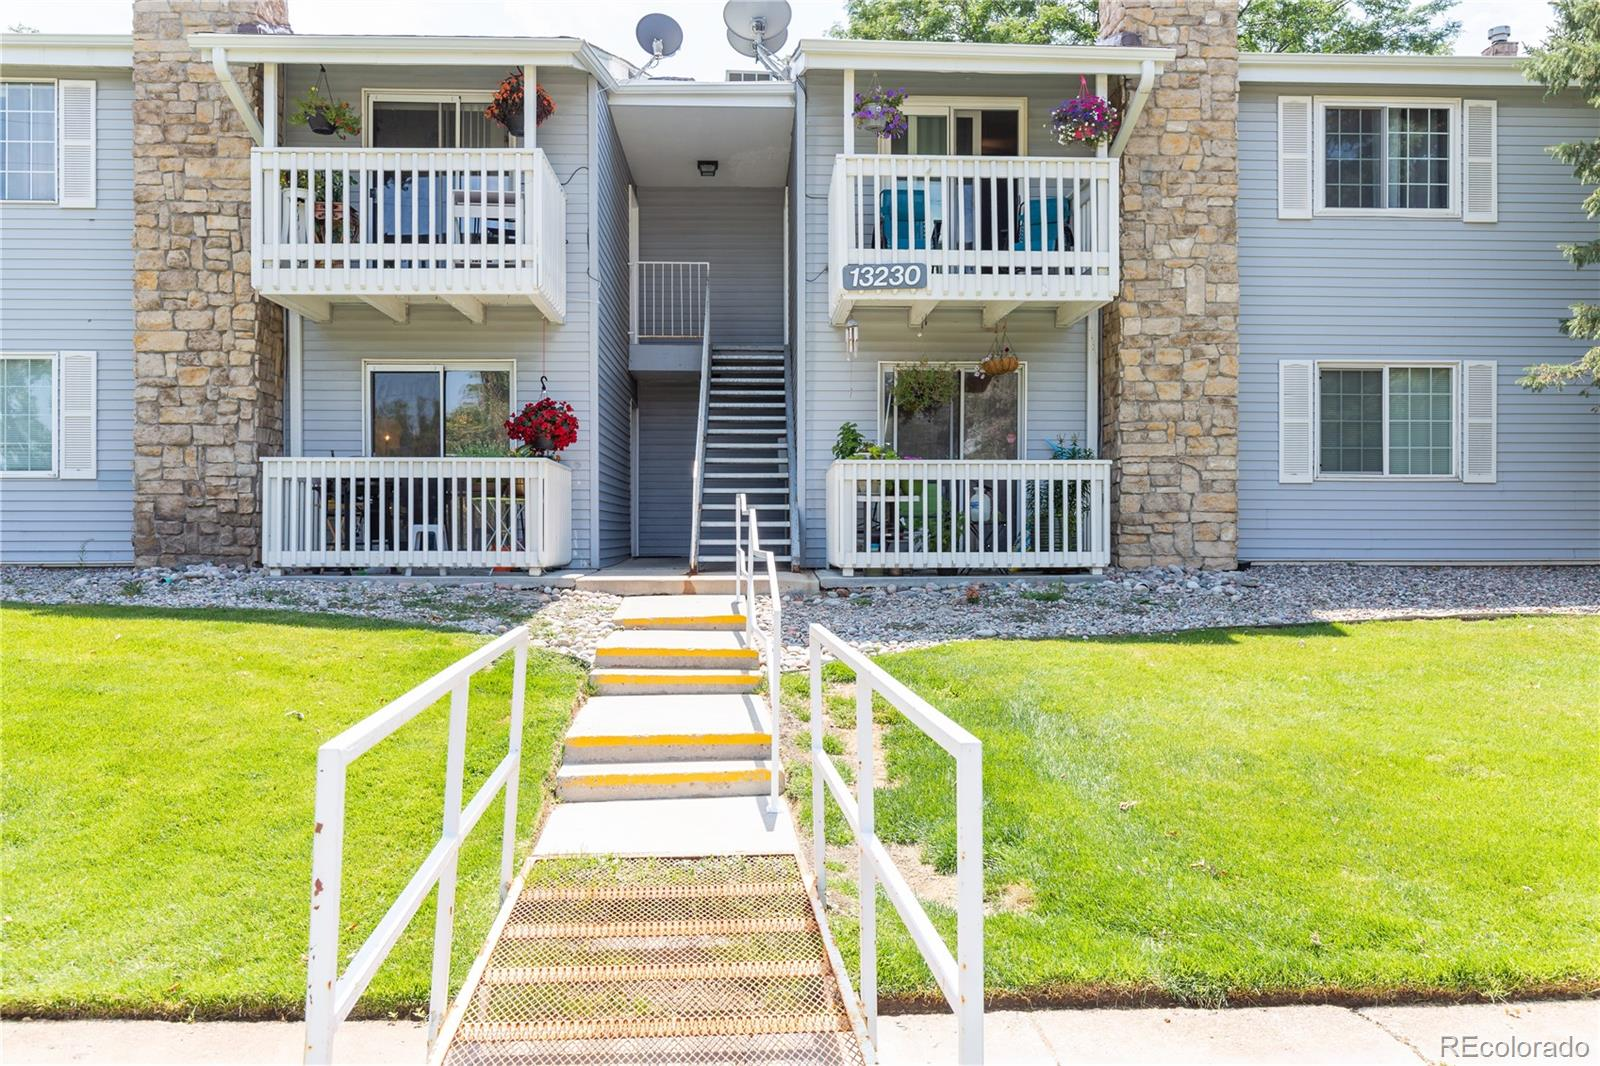 Spacious 2 Bed + 2 Bath condo at Brandychase with updated bathrooms, electric fireplace and well maintained. It is minutes away from hospitals, light rail, highway, parks, bike path and located in the cherry creek school district. This well priced condo won't last.